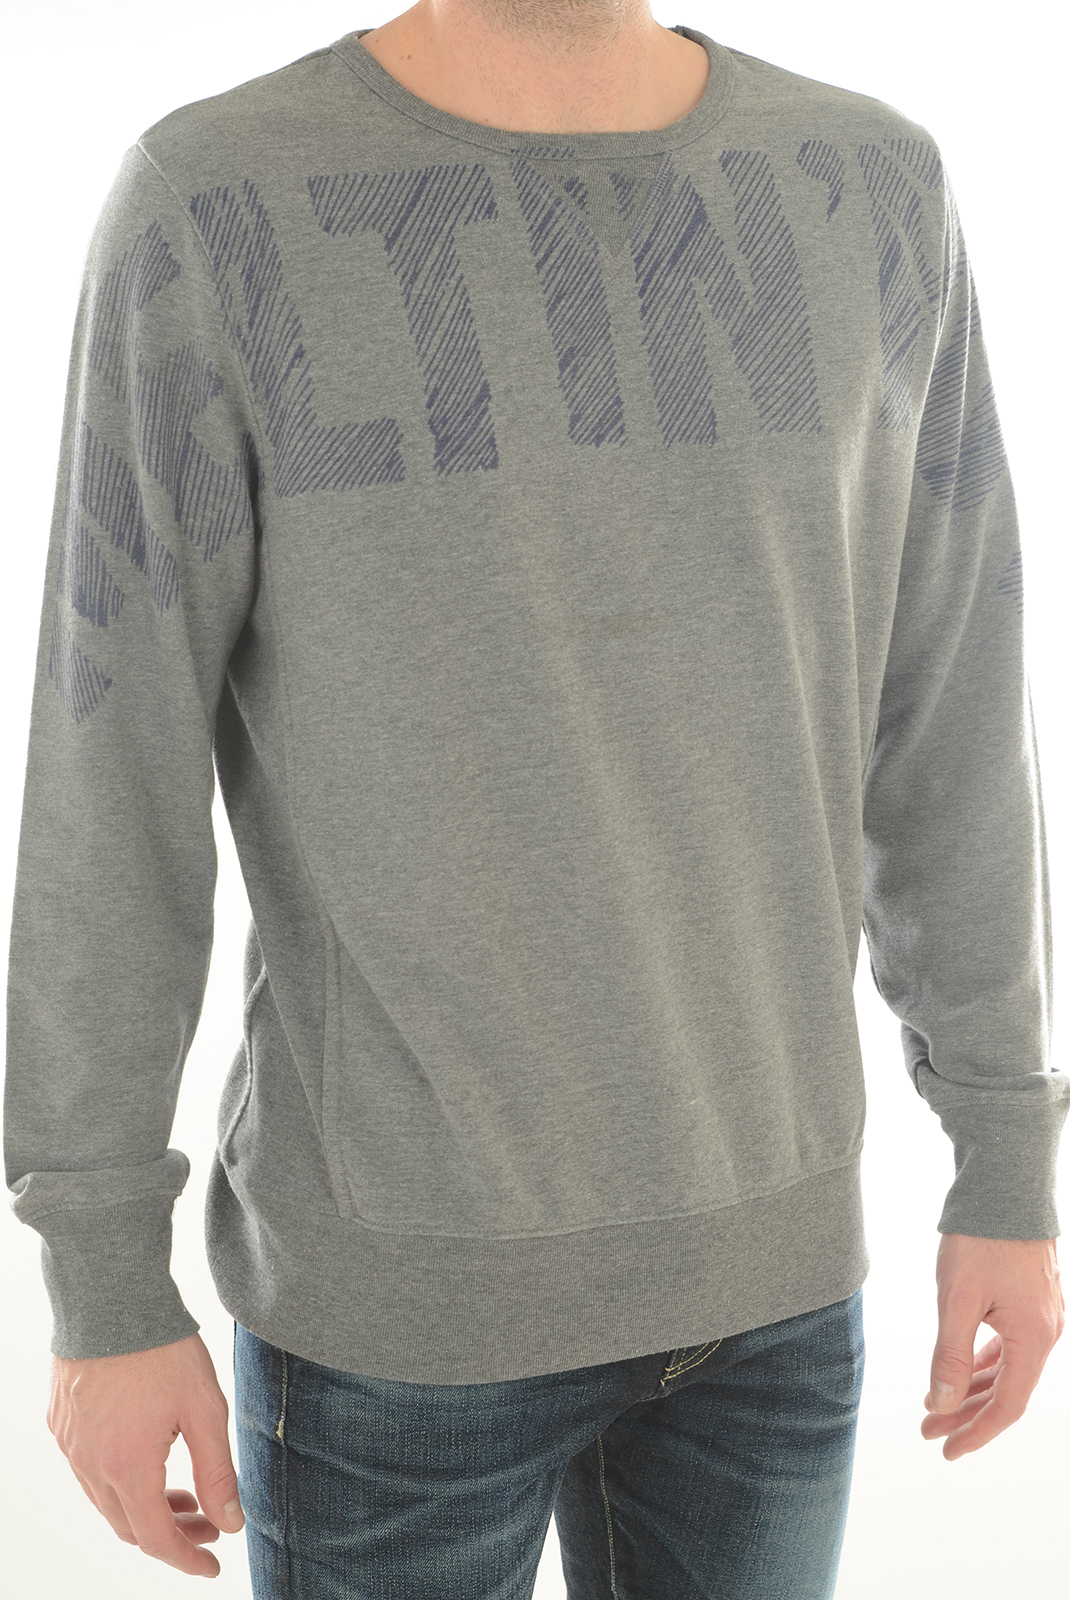 Sweatshirts  Meltin'pot FIDEL GM46 GRIS